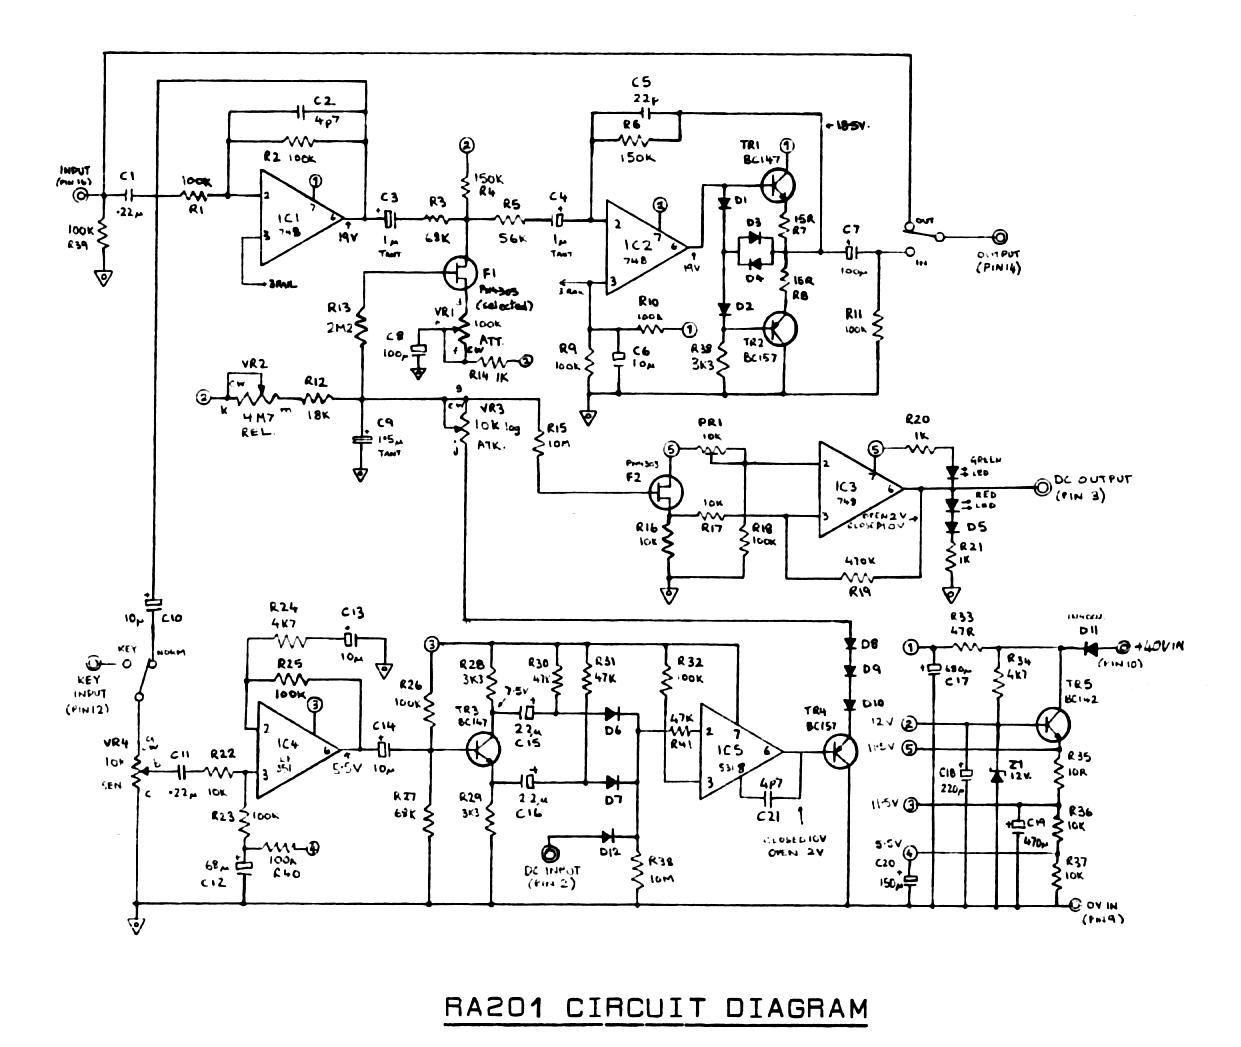 Table Lamp Wiring Diagram. Wiring. Wiring Diagrams Instructions